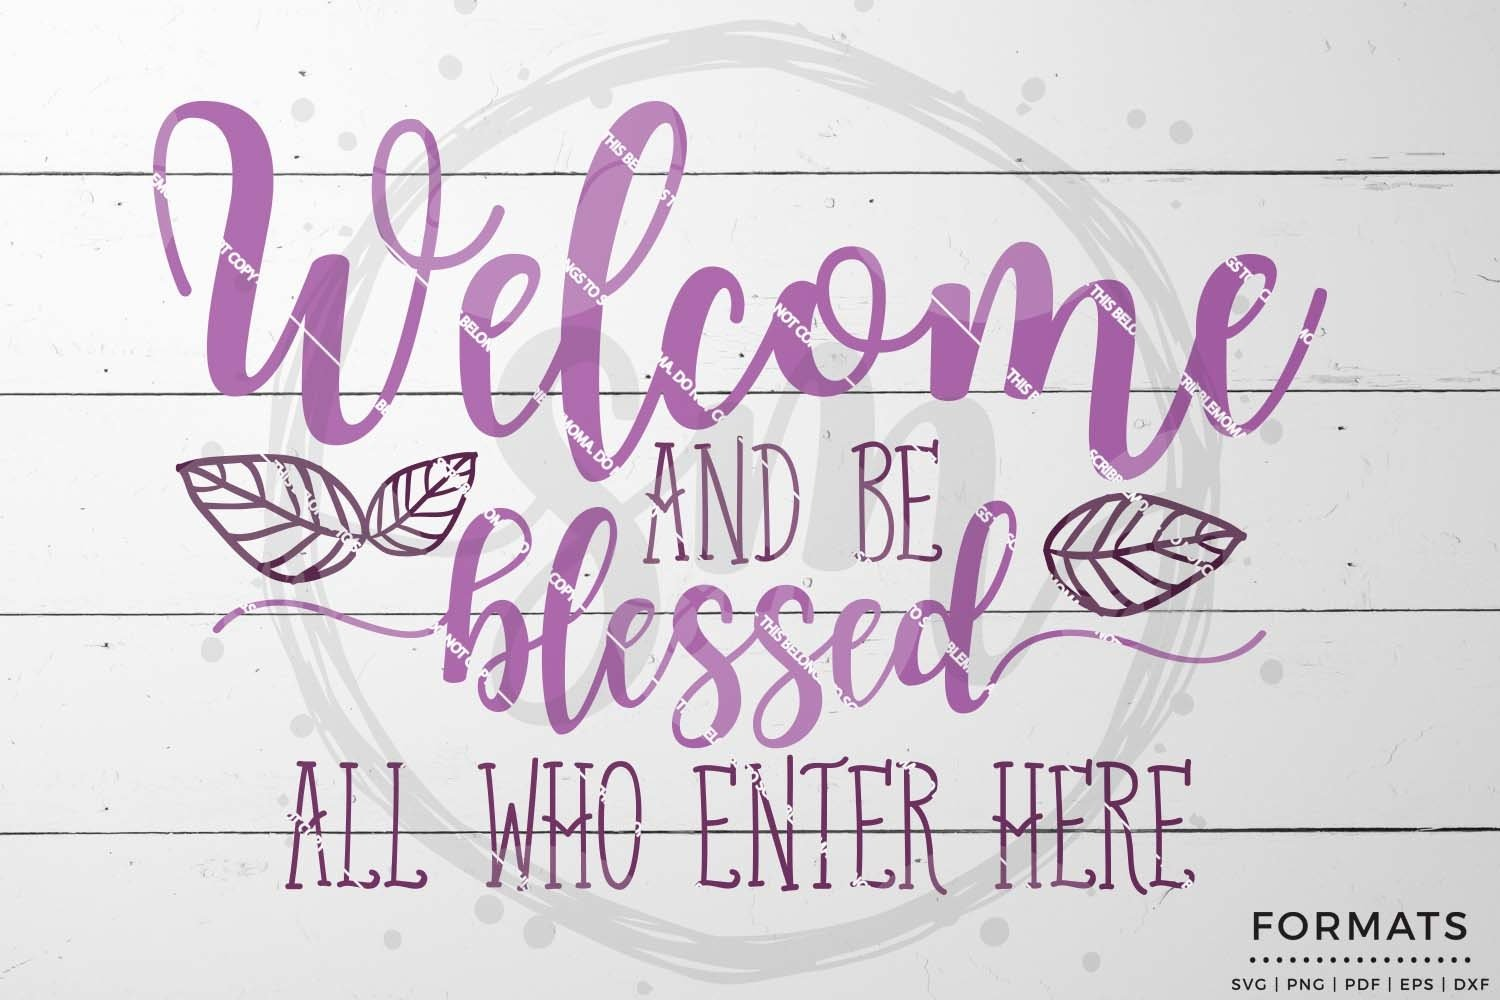 16+ Welcome And Be Blessed Svg – Small Commercial Use Svg & Instant Download SVG